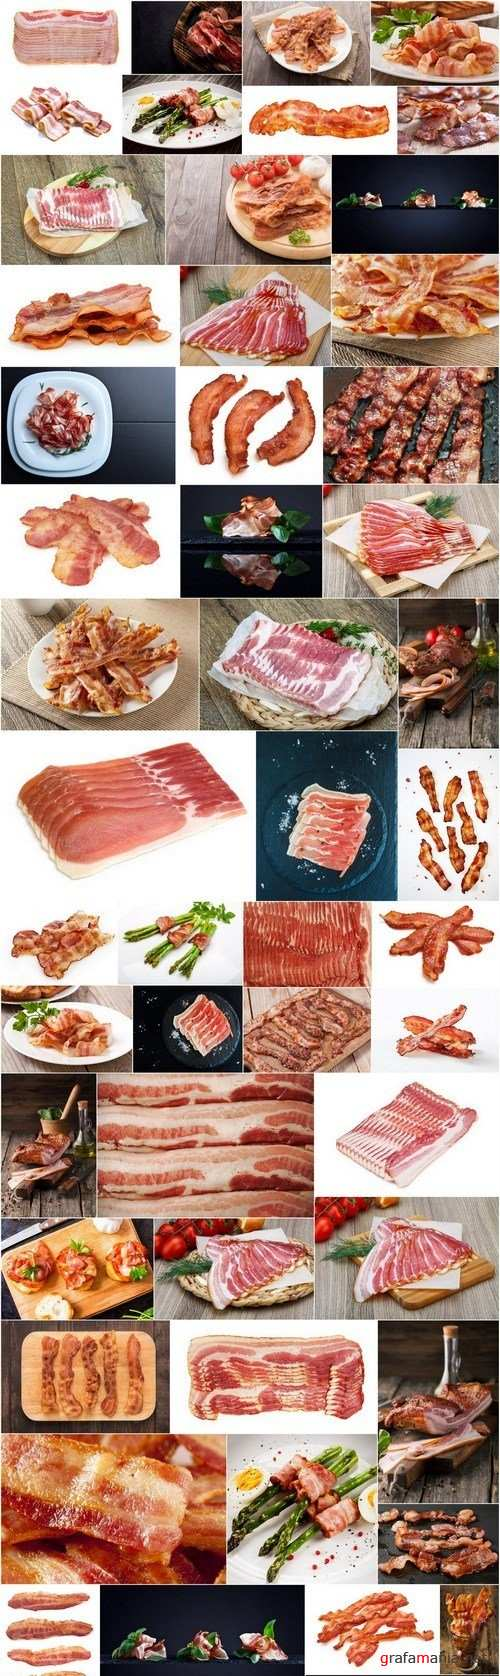 Tasty Bacon - Set of 53xUHQ JPEG Professional Stock Images